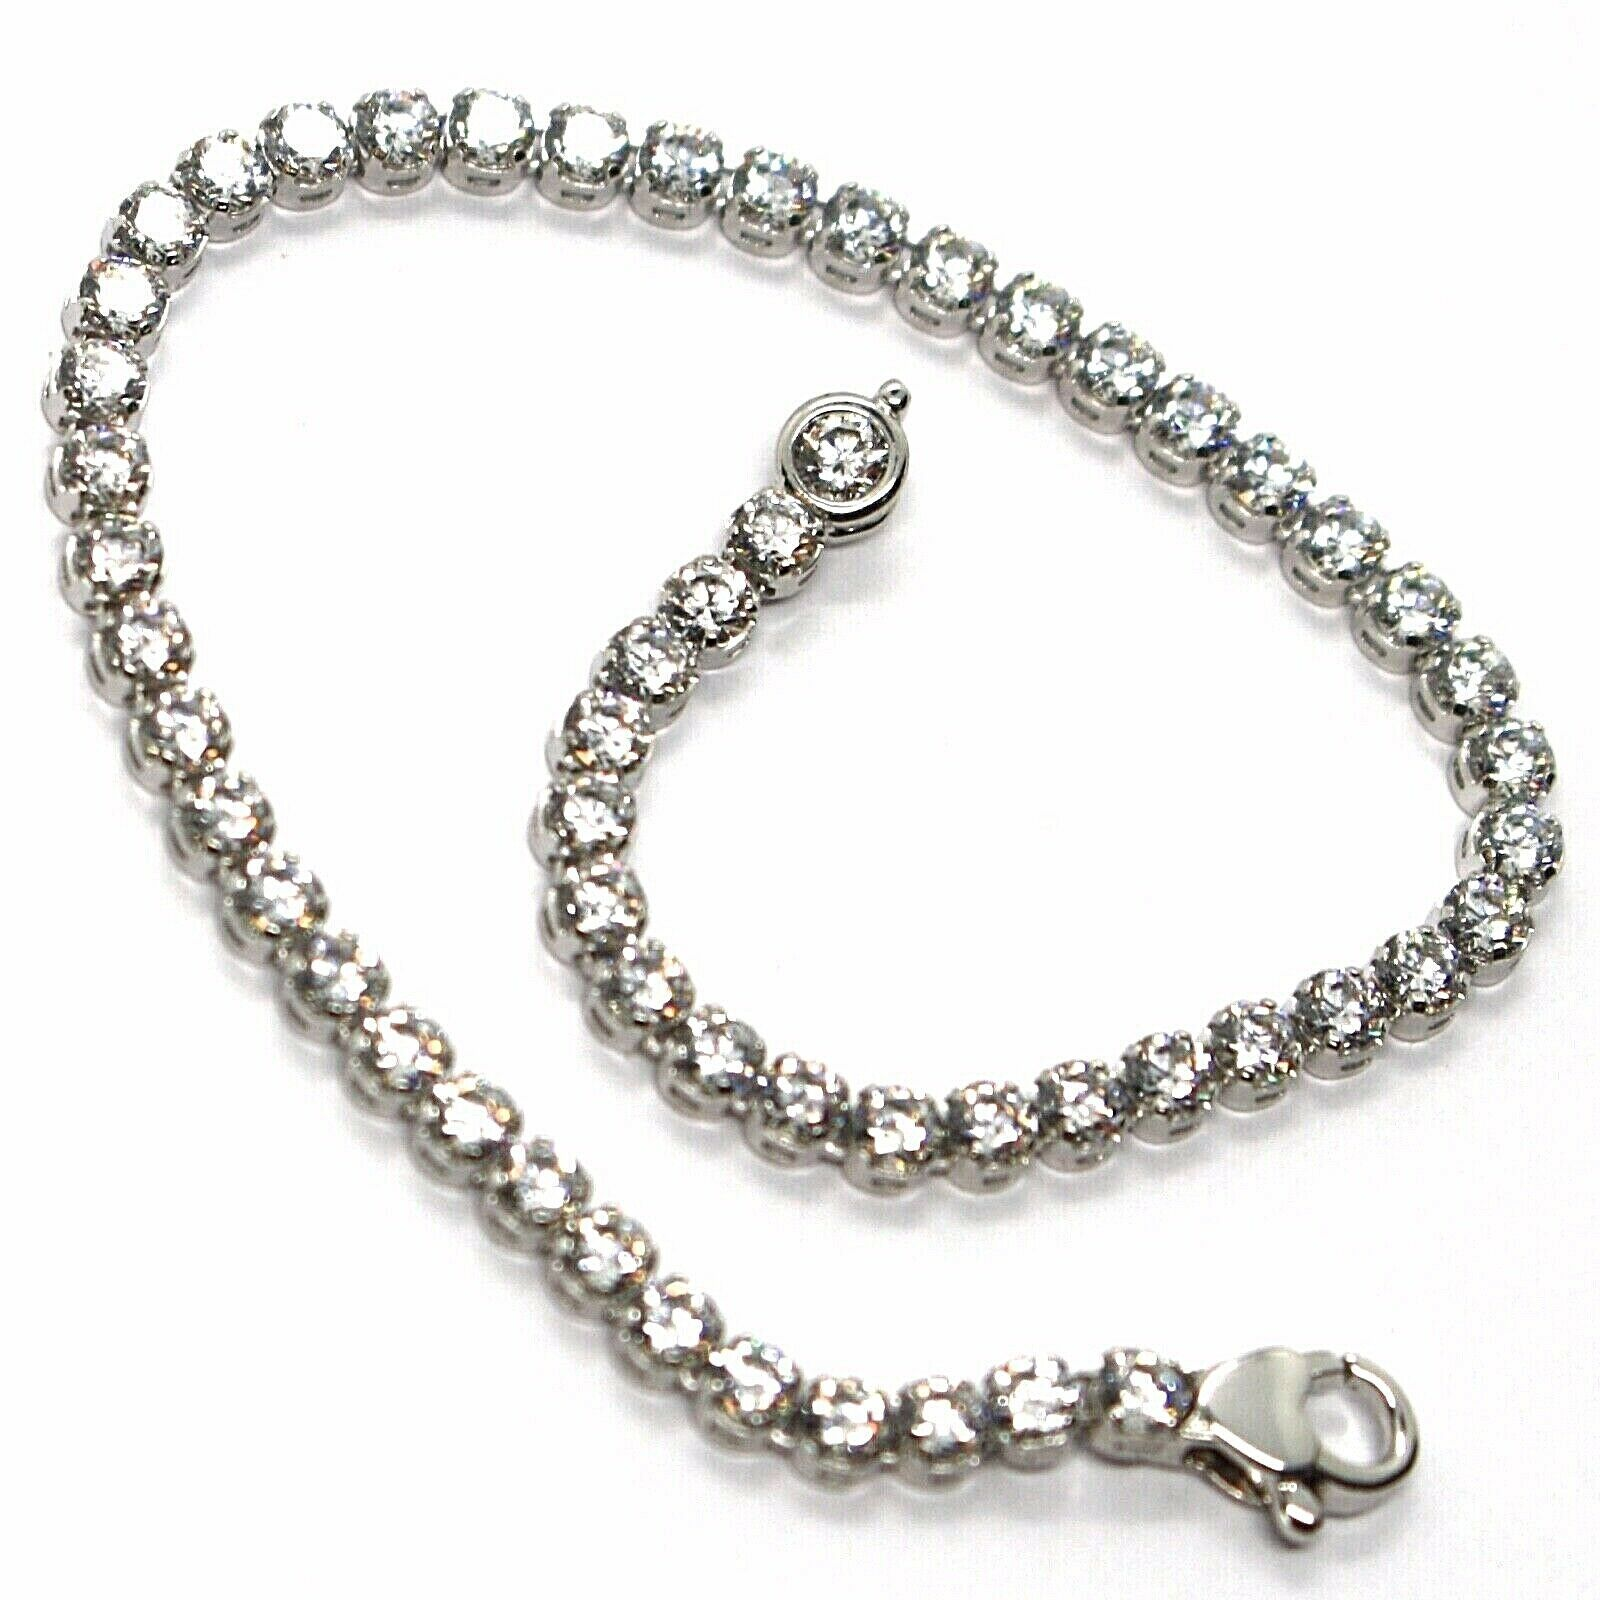 18K WHITE GOLD TENNIS BRACELET CUBIC ZIRCONIA WIDTH 3.2 MM LOBSTER CLASP CLOSURE